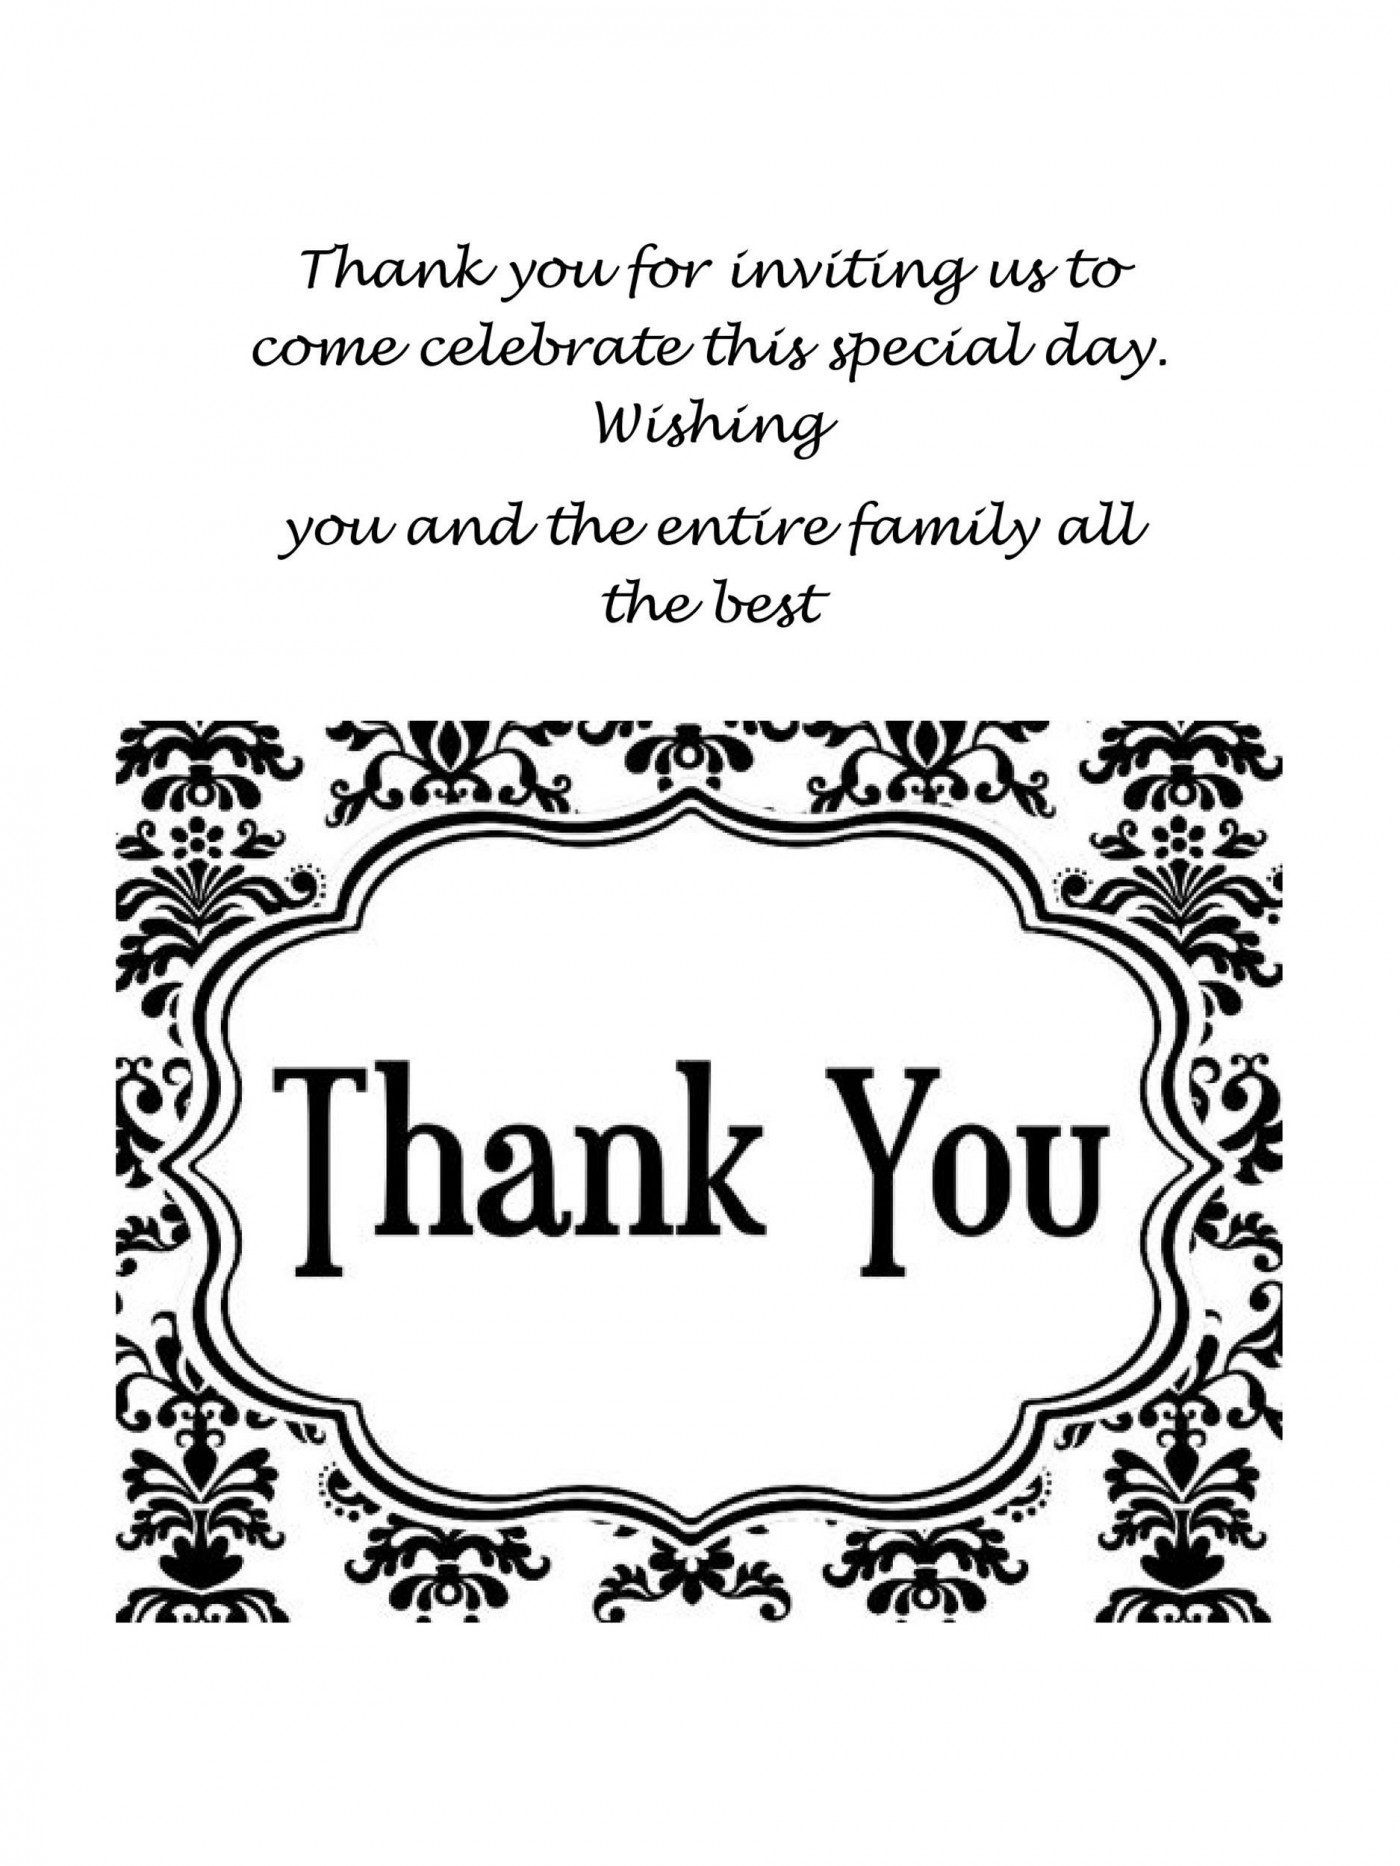 008 Archaicawful Thank You Card Template Design  Wedding Busines Word Free1400